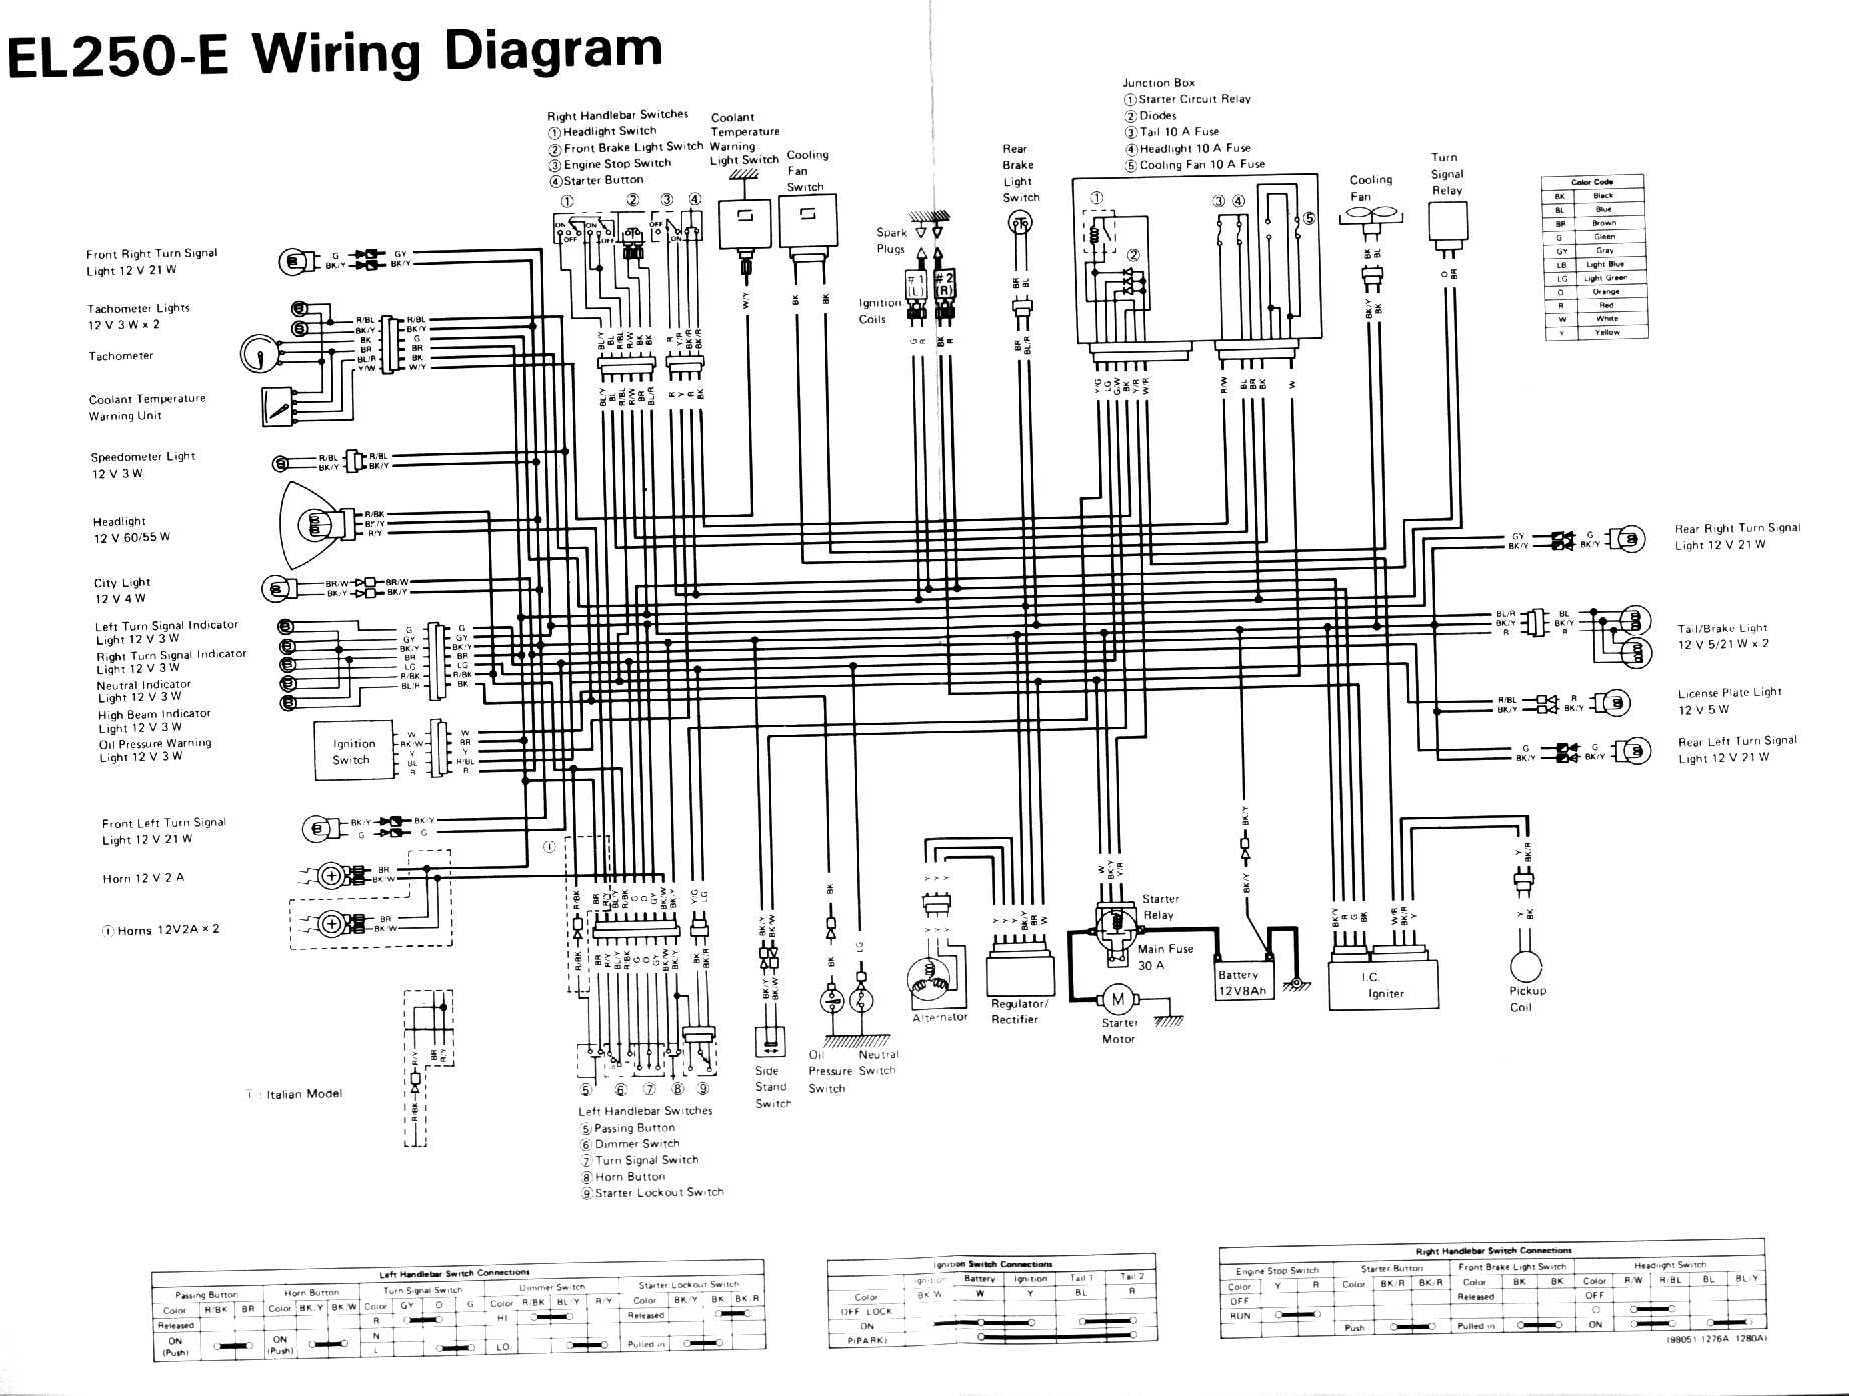 Kawasaki Zrx 1200 Wiring Diagram likewise Kawasaki Vulcan 1600 Wiring Diagram further Showthread likewise Kawasaki Prairie further Ninja 250 Engine Diagram. on kawasaki zrx 1200 wiring diagram